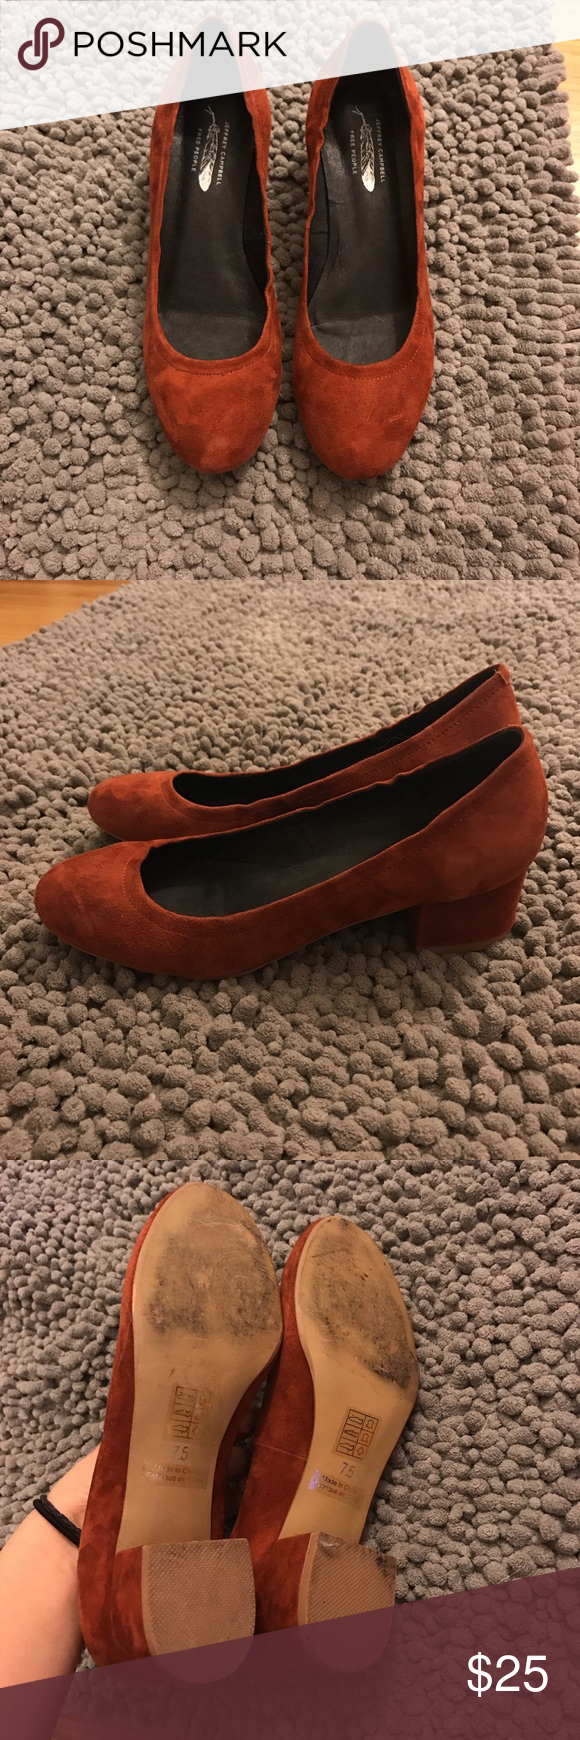 52b9becd160 Jeffrey Campbell Bitsie heels in rust suede. Size 7.5 but best fits a size  7. Worn once only. 2